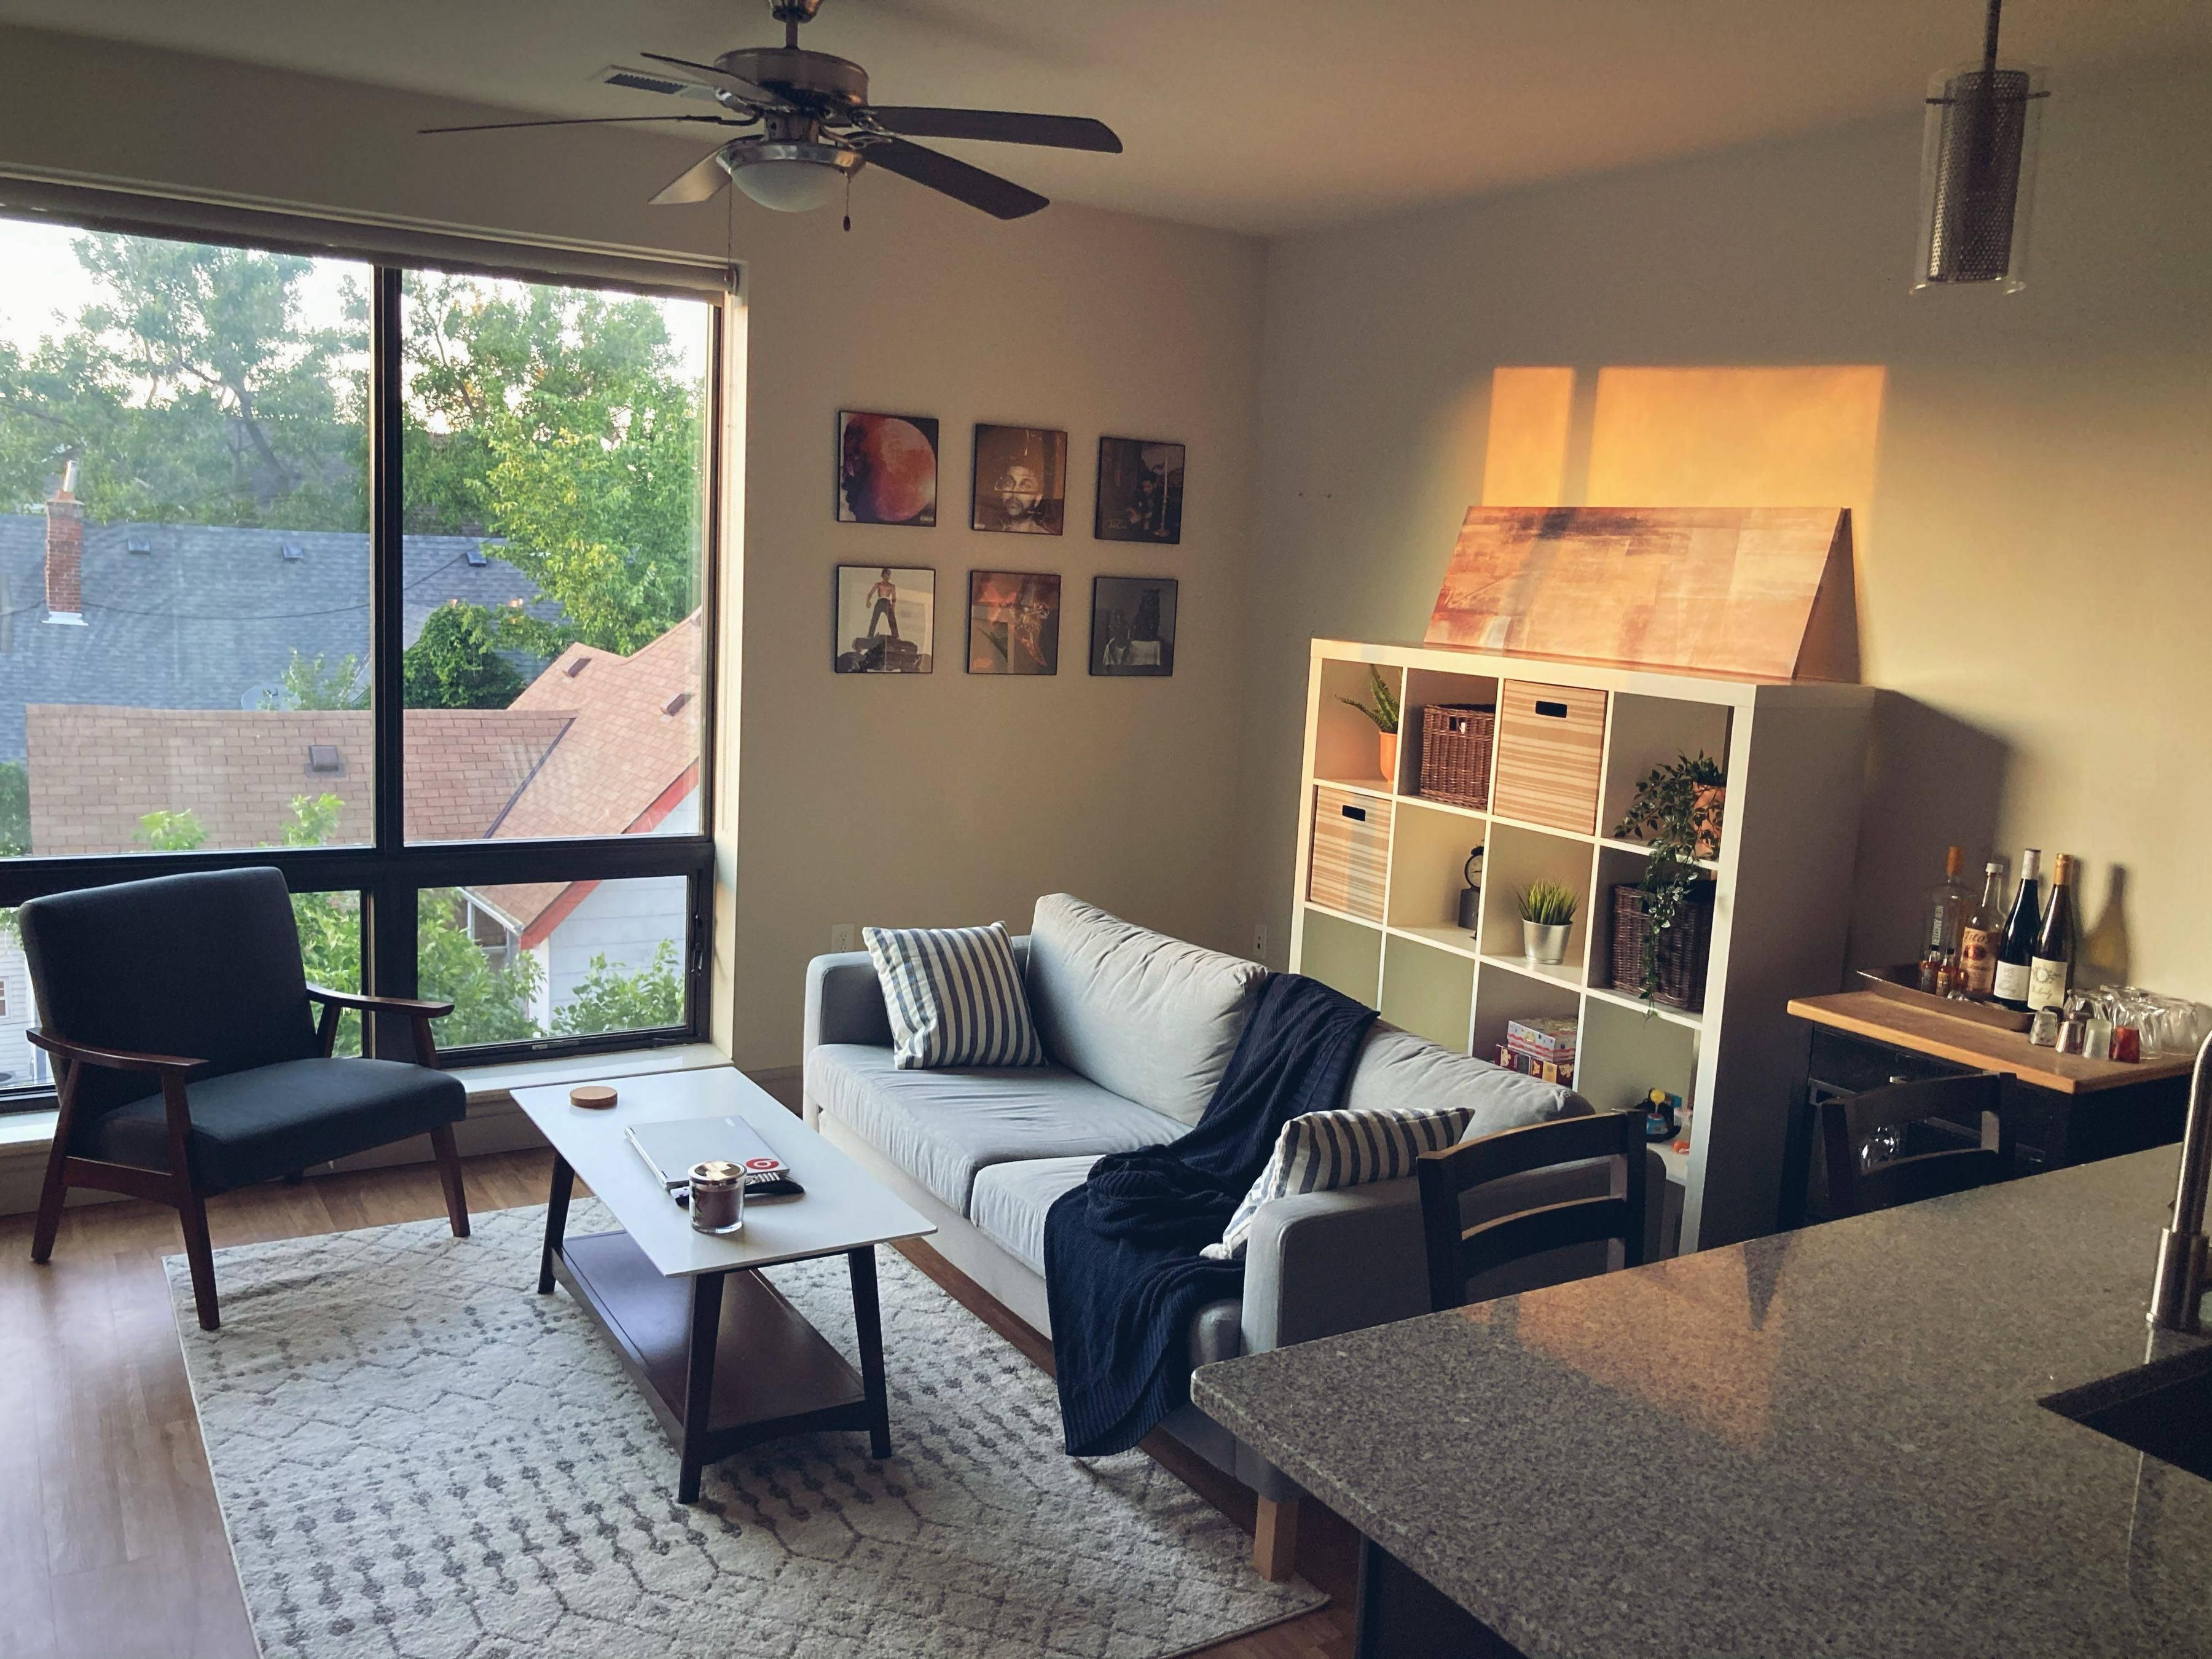 First Time Living Alone Pretty Happy With The Results Interior Living Space Design Concept Furniture Home Decor Aesth Home Apartment Aesthetic Guys Room First time living alone